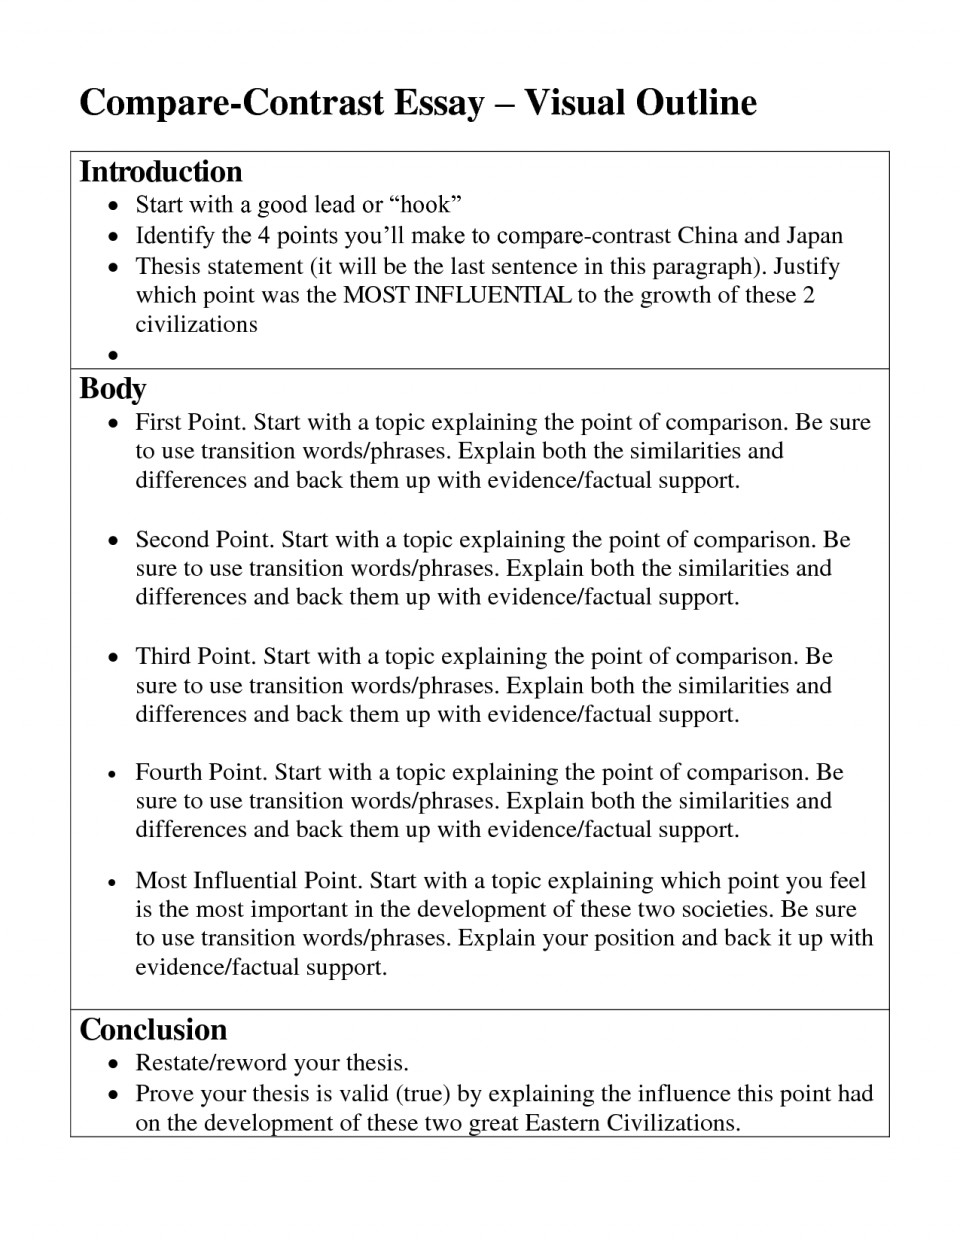 009 Good Compare And Contrast Essay Unbelievable The Great Gatsby Tom Examples Middle School Movie Book 960